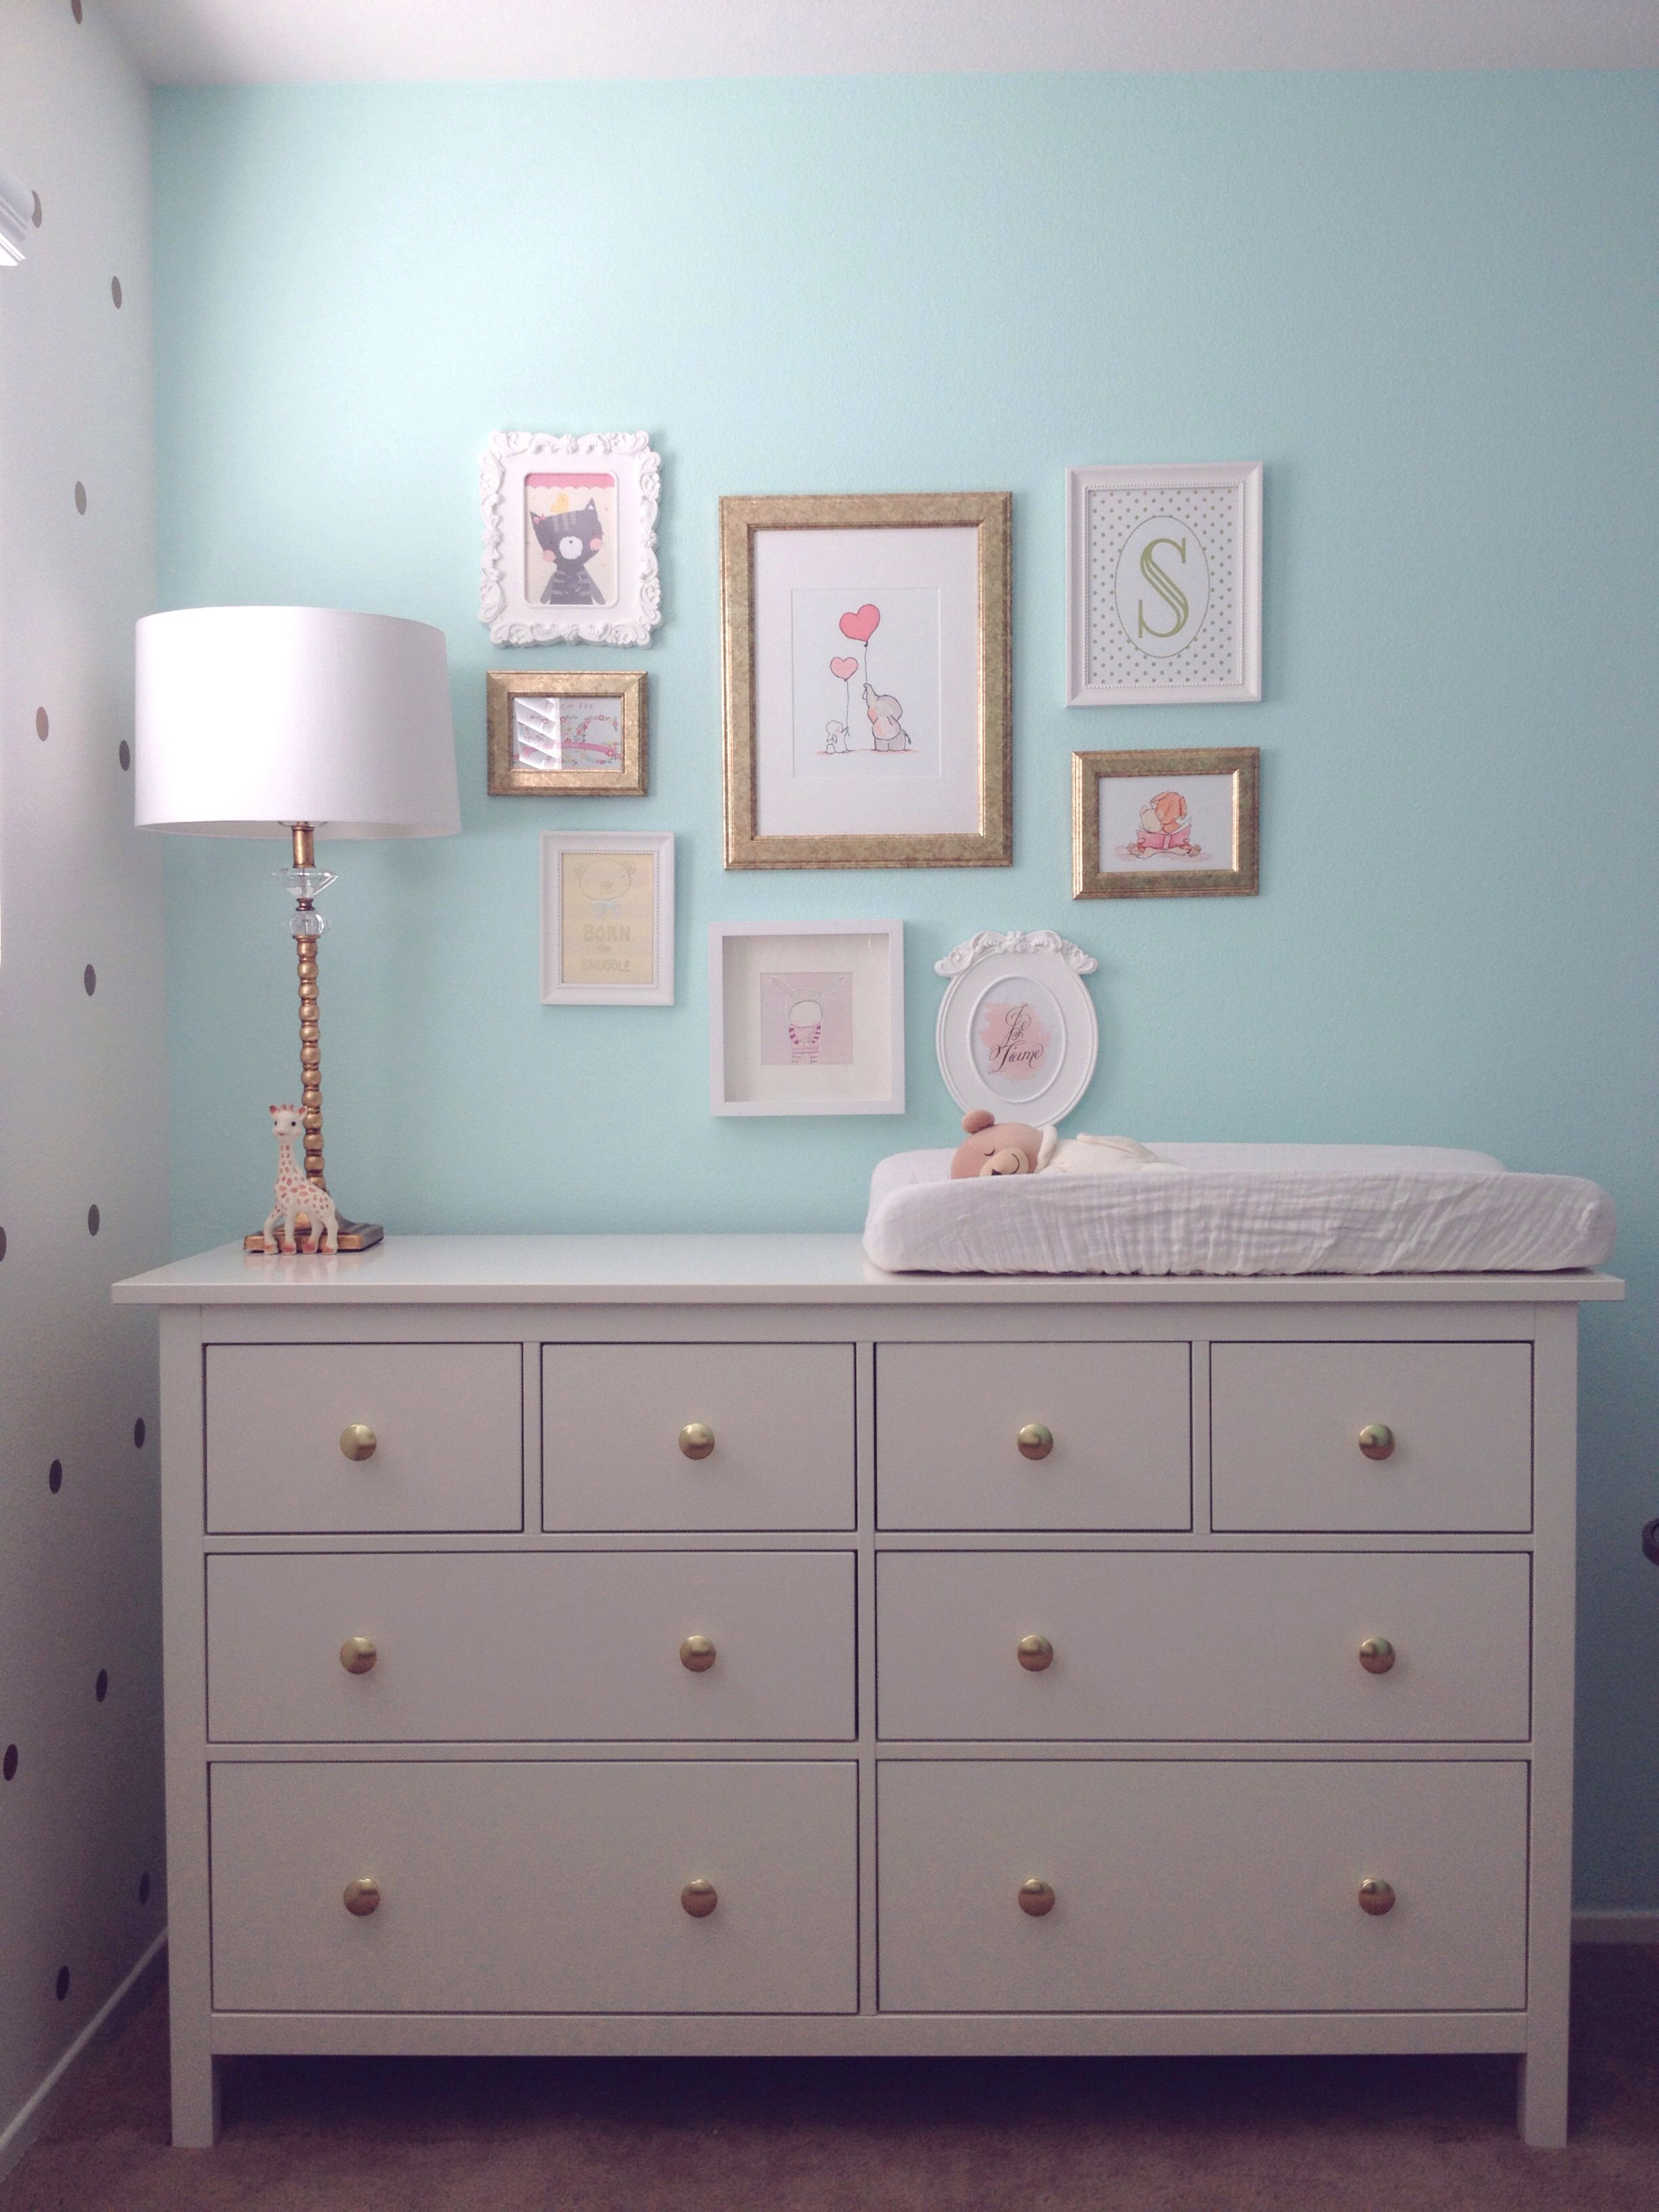 mint gold nursery frames from ikea hemnes dresser from ikea gold knobs from land of nod. Black Bedroom Furniture Sets. Home Design Ideas